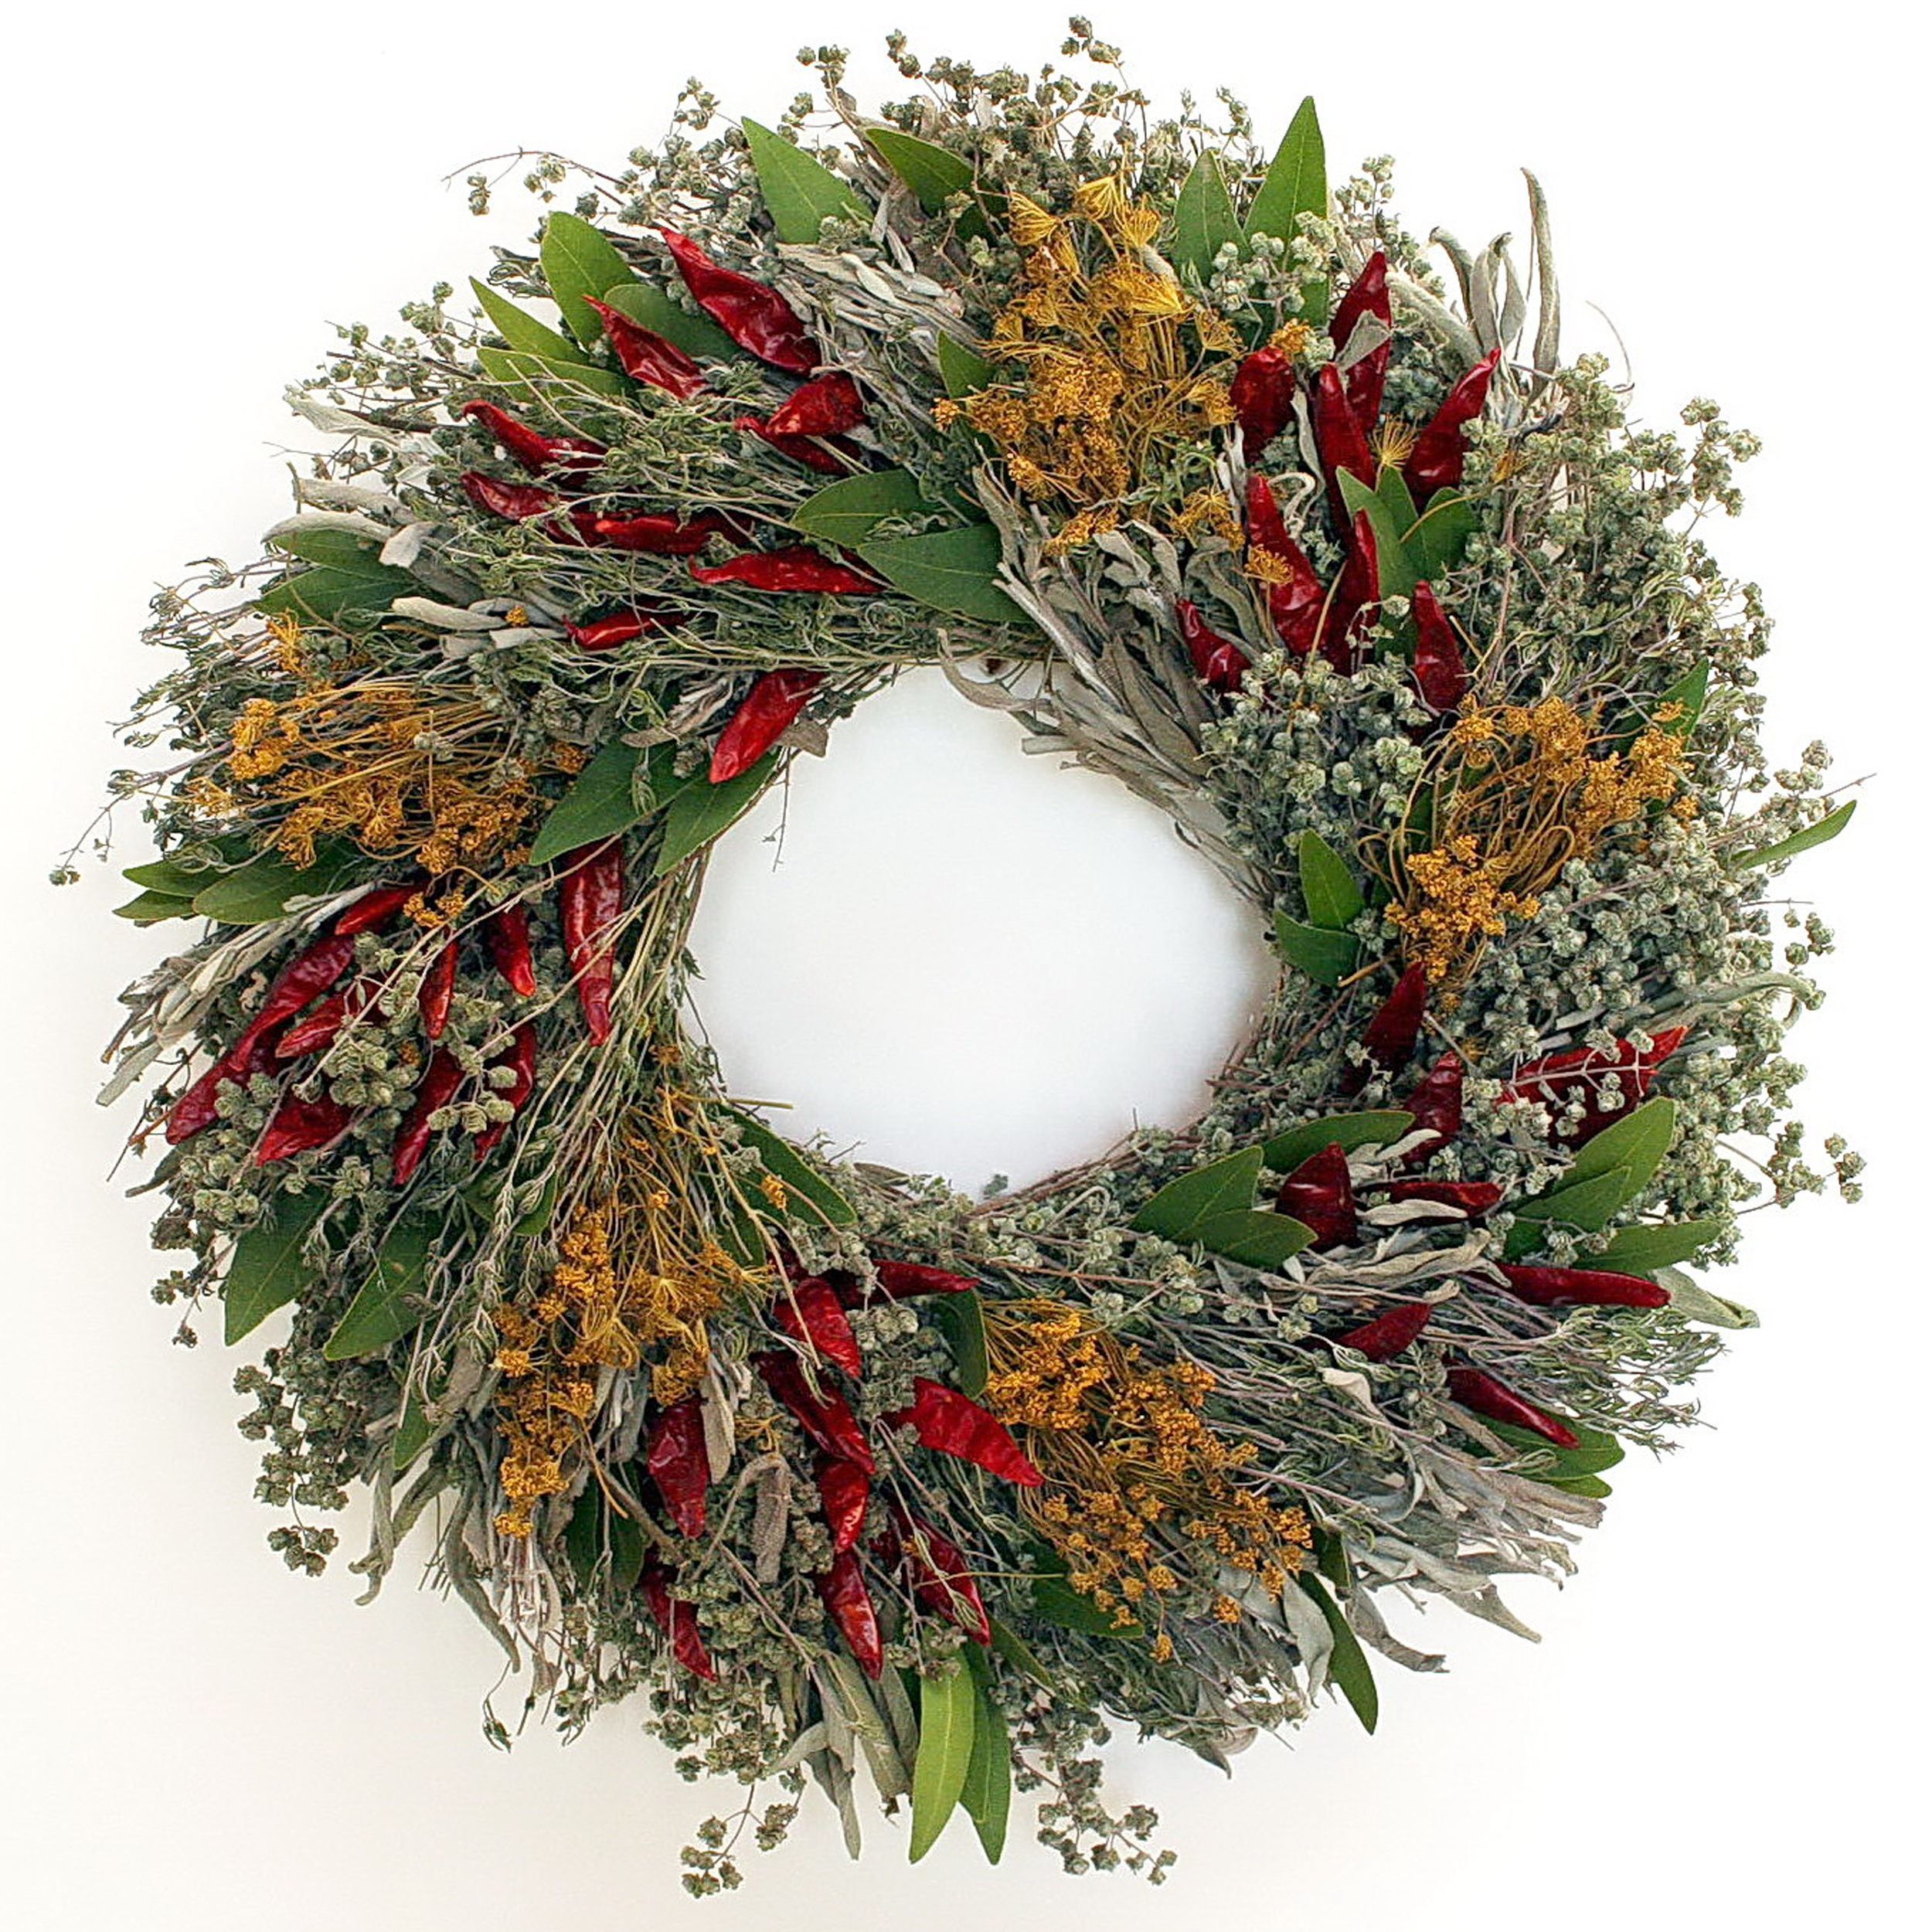 CHILI WREATH ~CLICK HERE TO PURCHASE